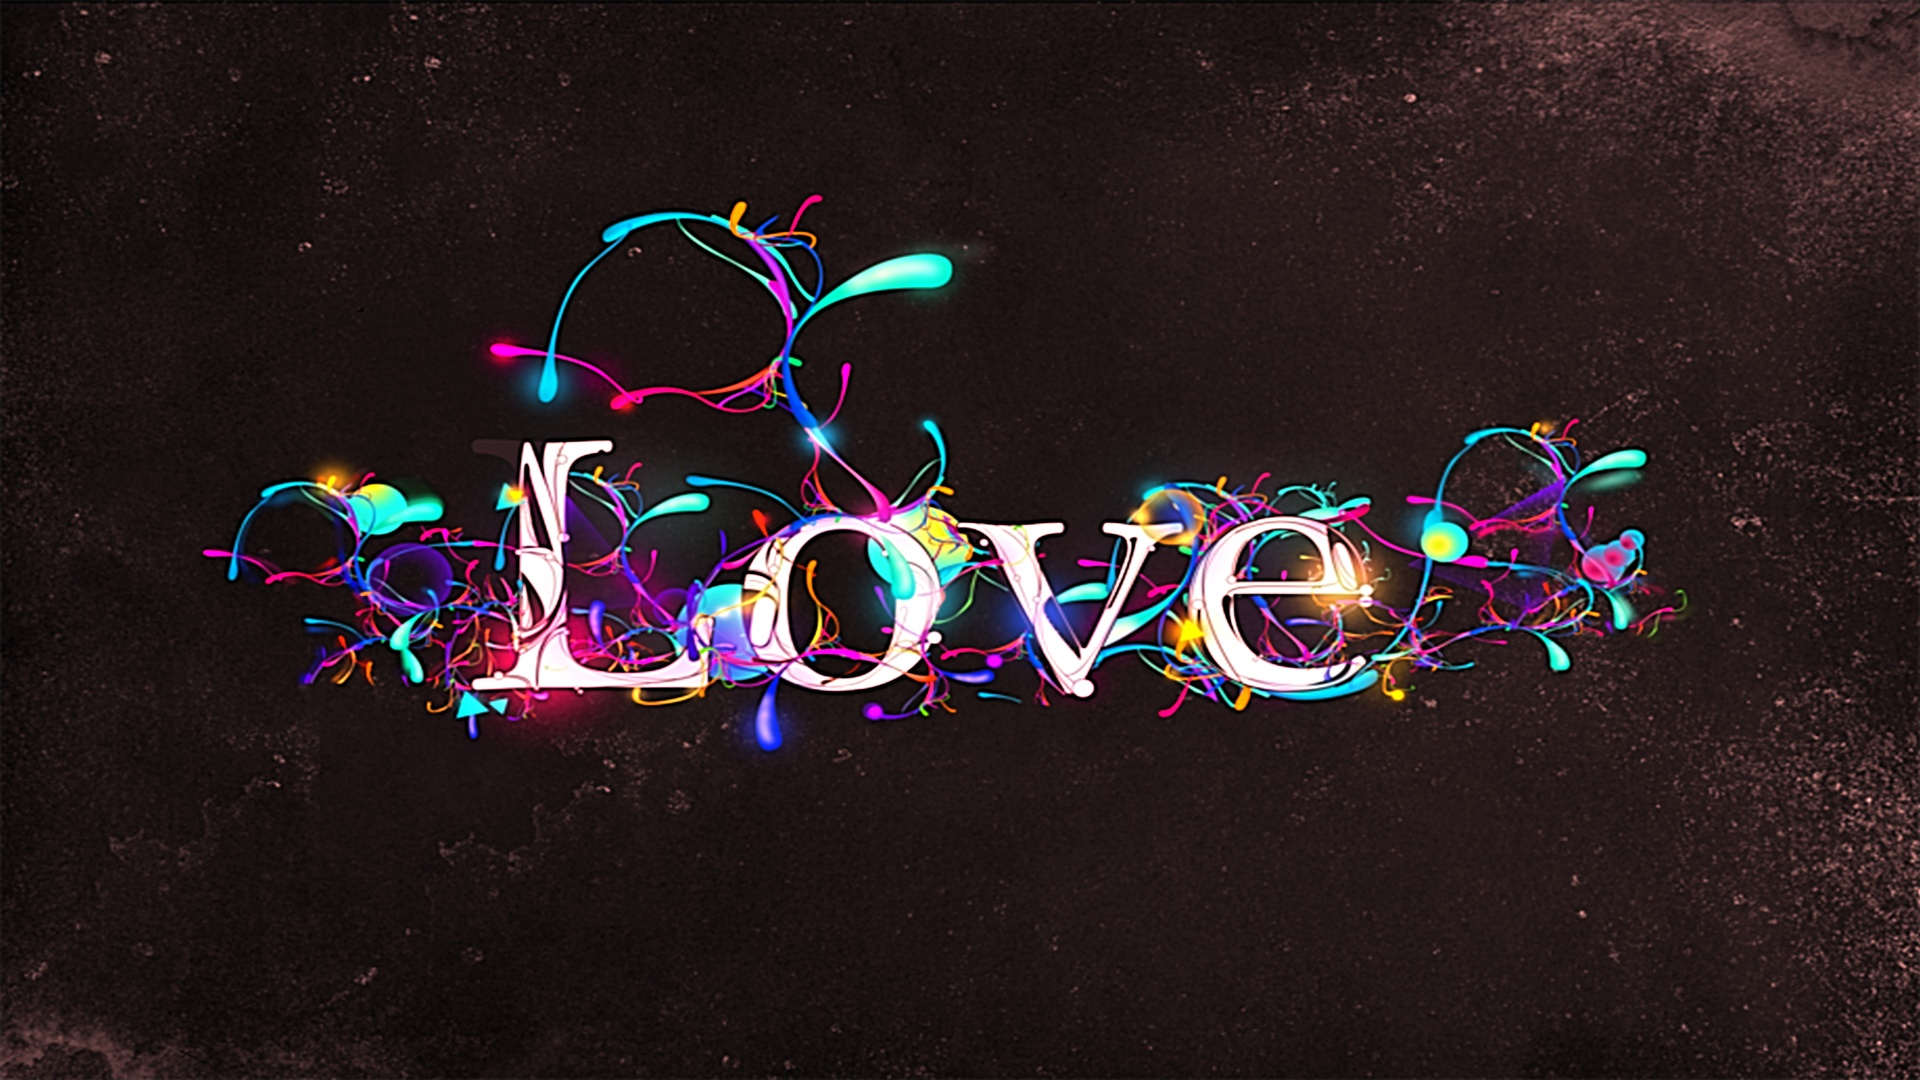 Love Wallpaper Painting : Paint Drops on Love ABSTRAcT